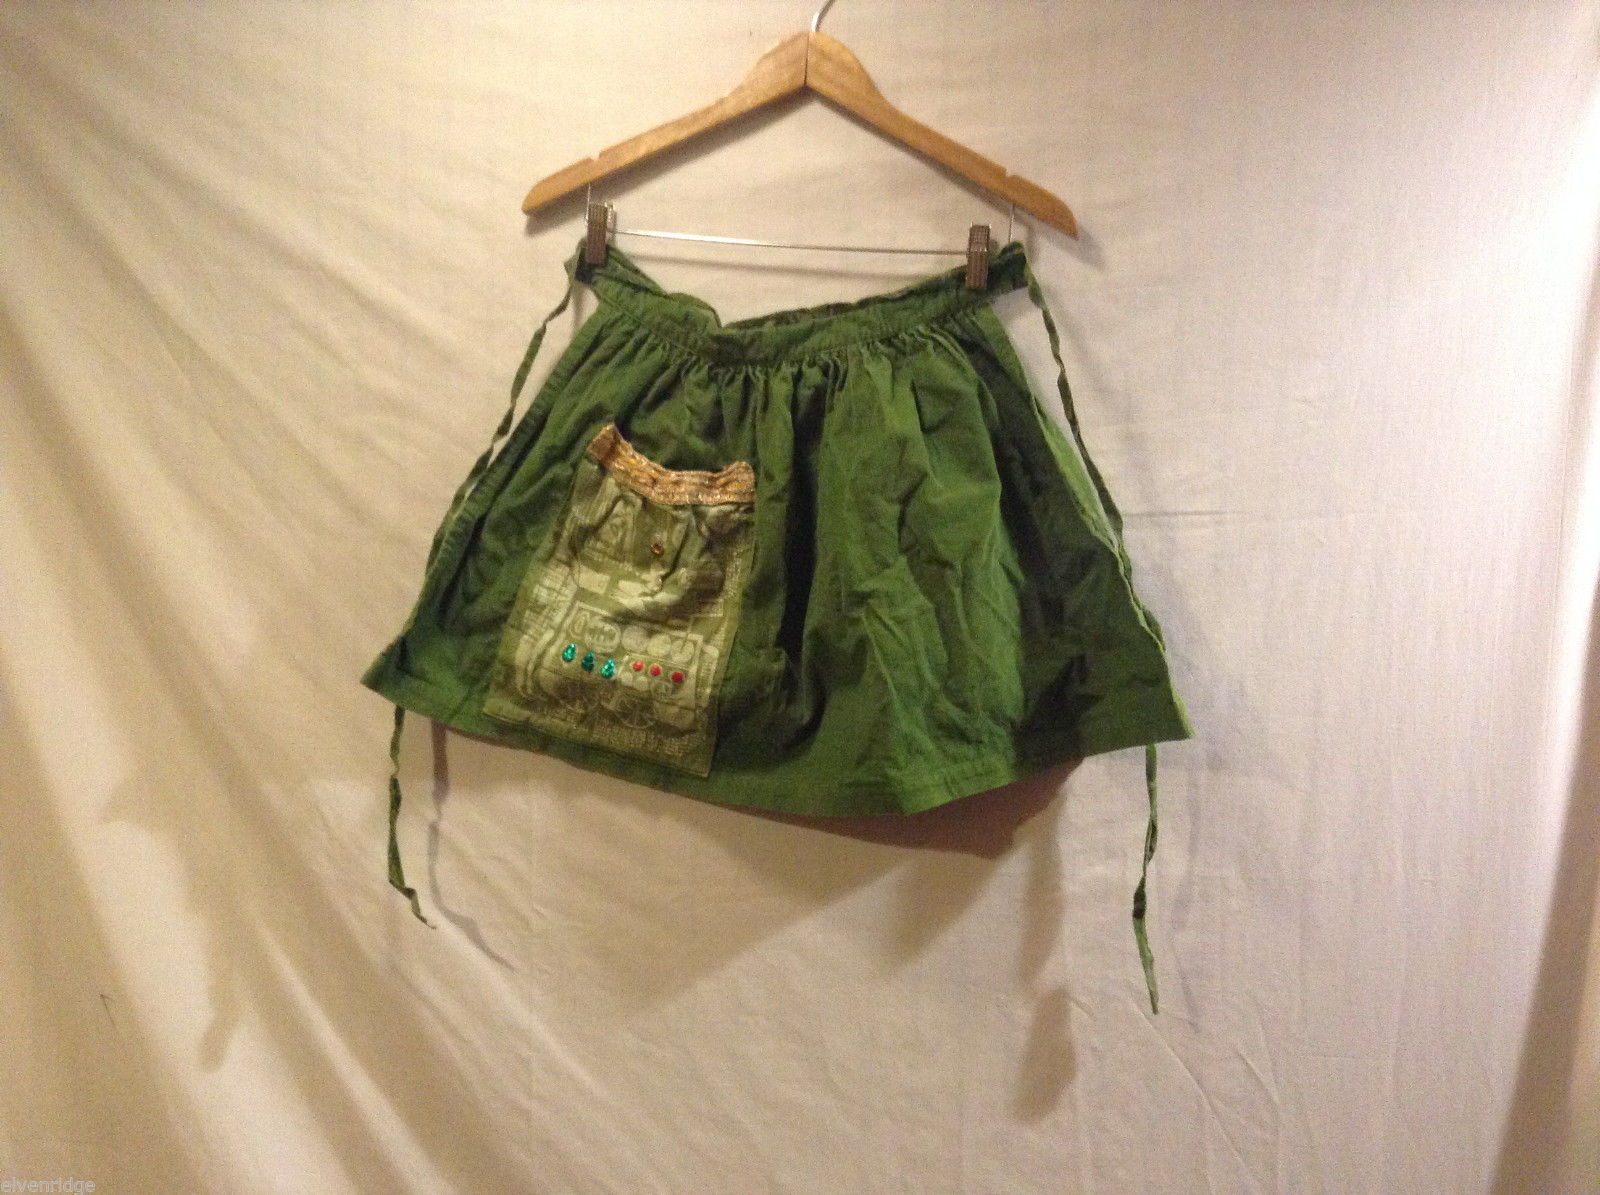 Green corduroy Mini Skirt or apron with front pocket gold stitching gems no size